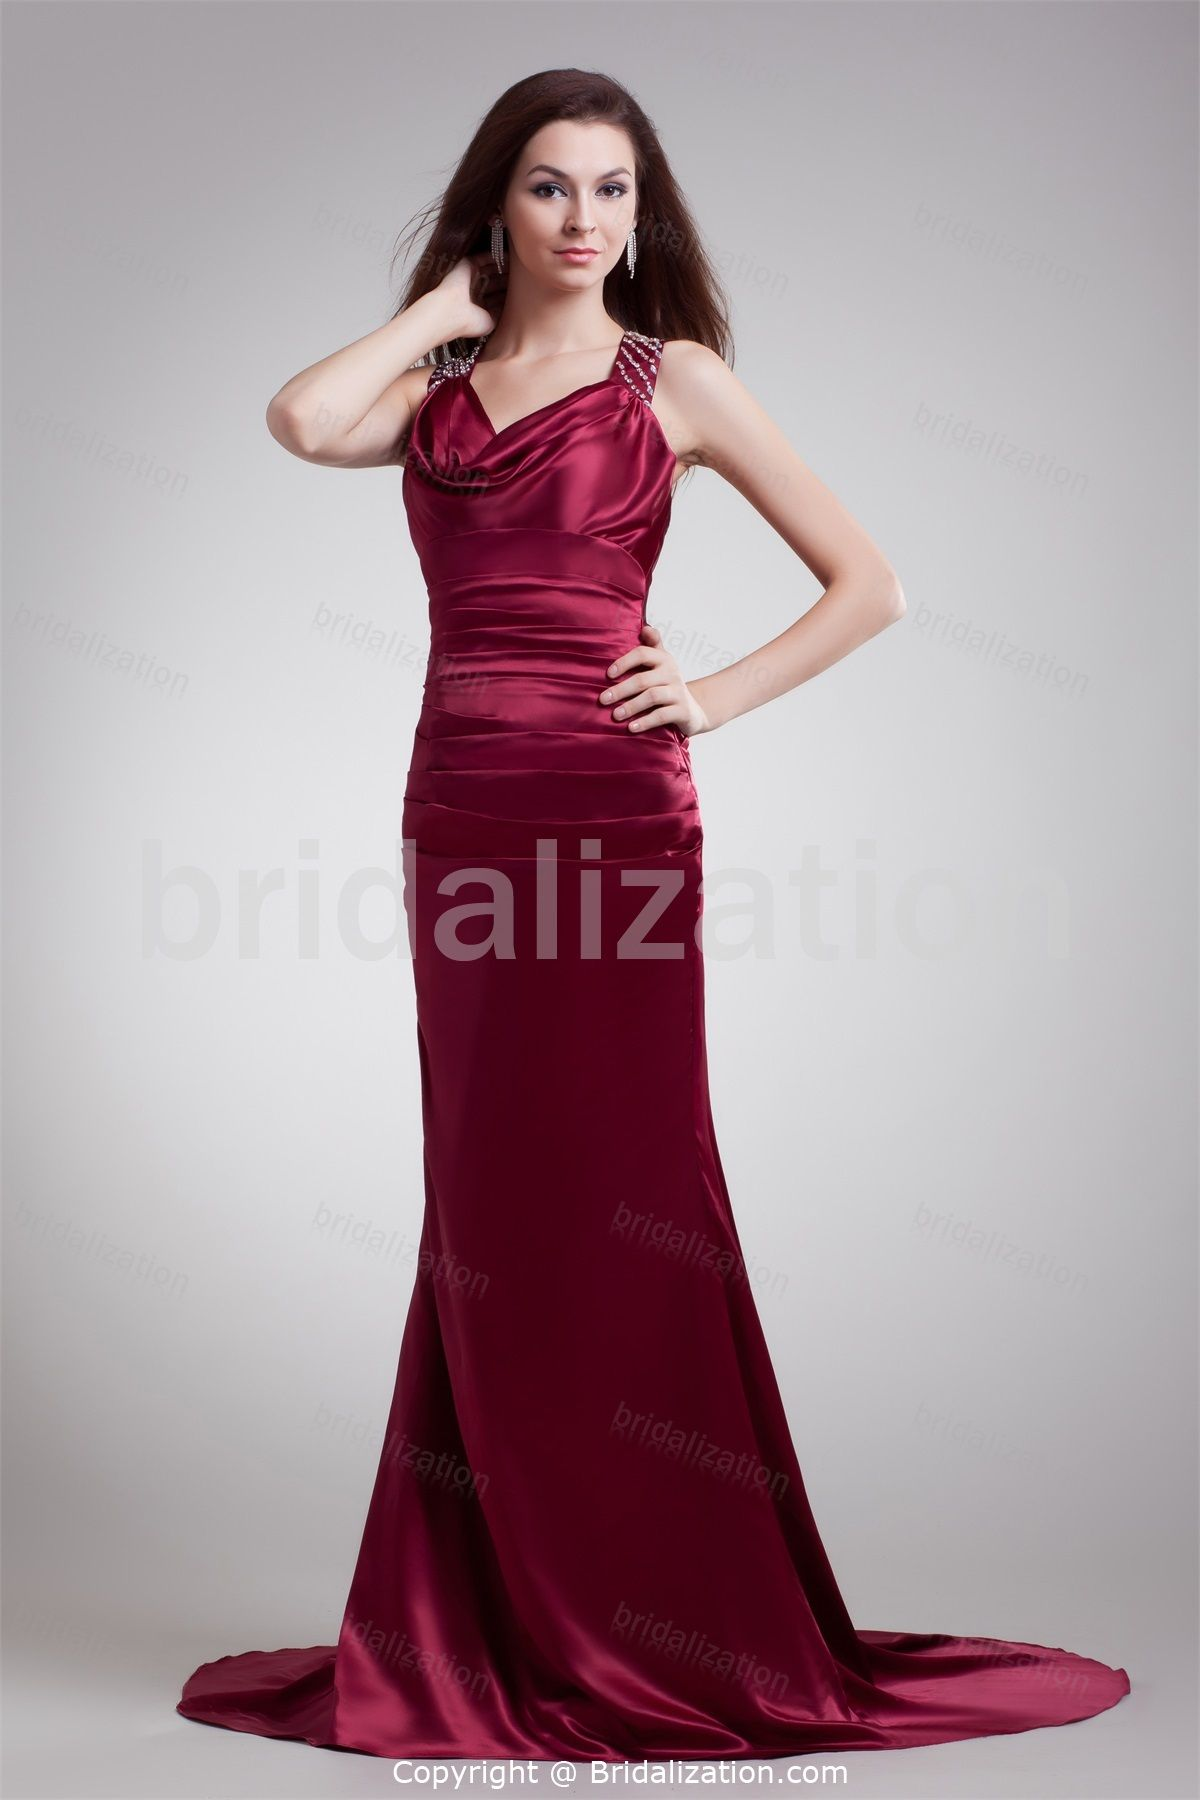 2019 year style- Satin Woven bridesmaid homecoming dresses